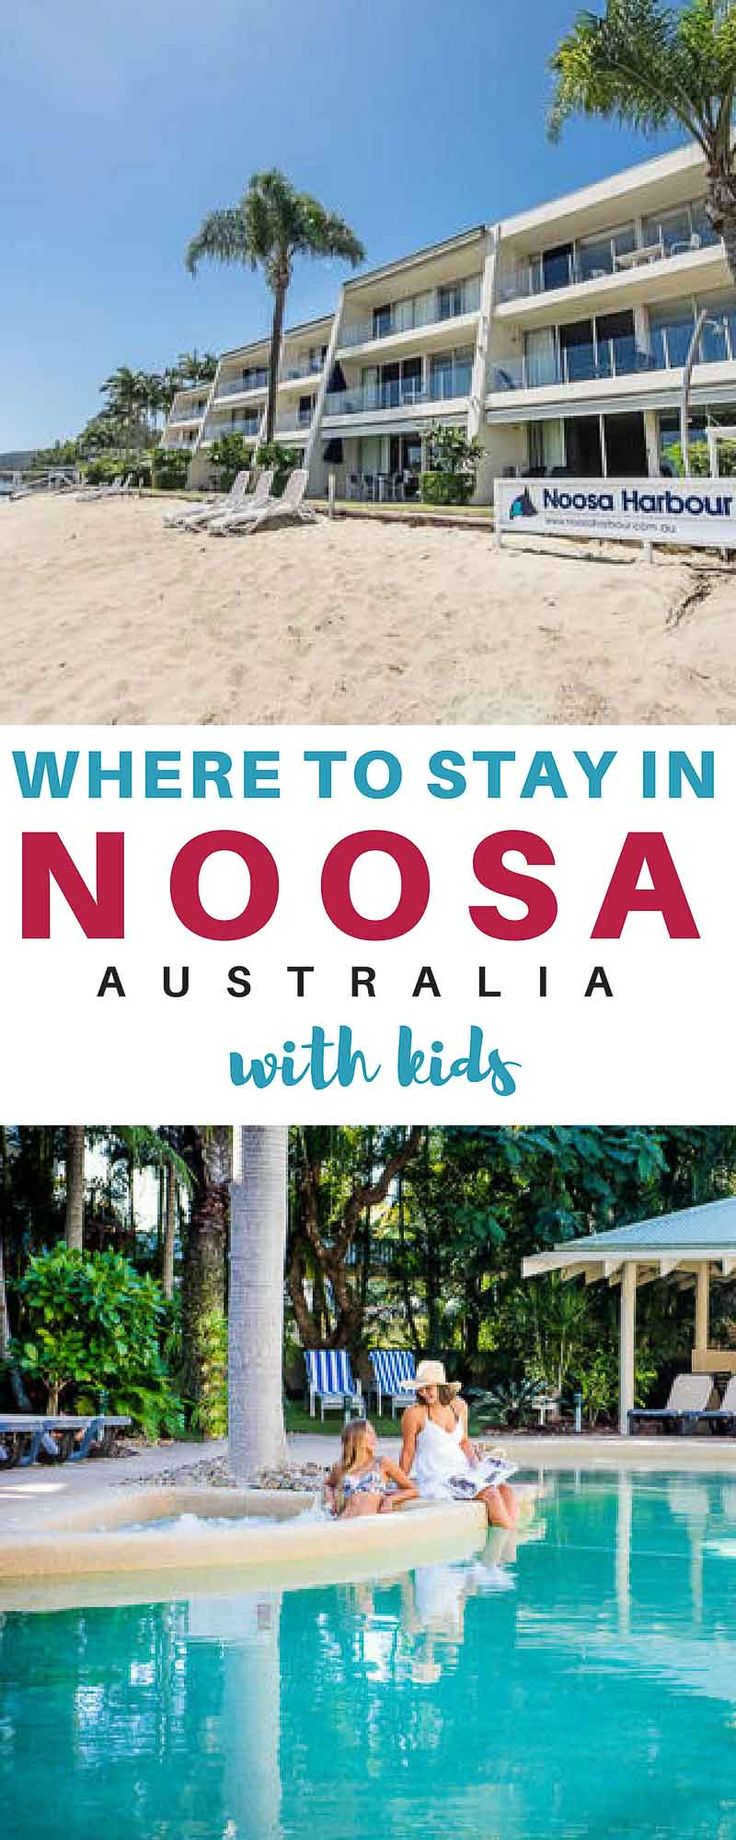 Where to stay in Noosa with kids? Check out the best family accommodation in Noosa - including everything you know to choose the best accommodation for your family such as resort facilities and the distance to all the main attractions around Noosa.  Noosa with kids | Noosa Hotels | Noosa Apartments | Noosa Resorts  | Noosa Accommodation | Noosa for families